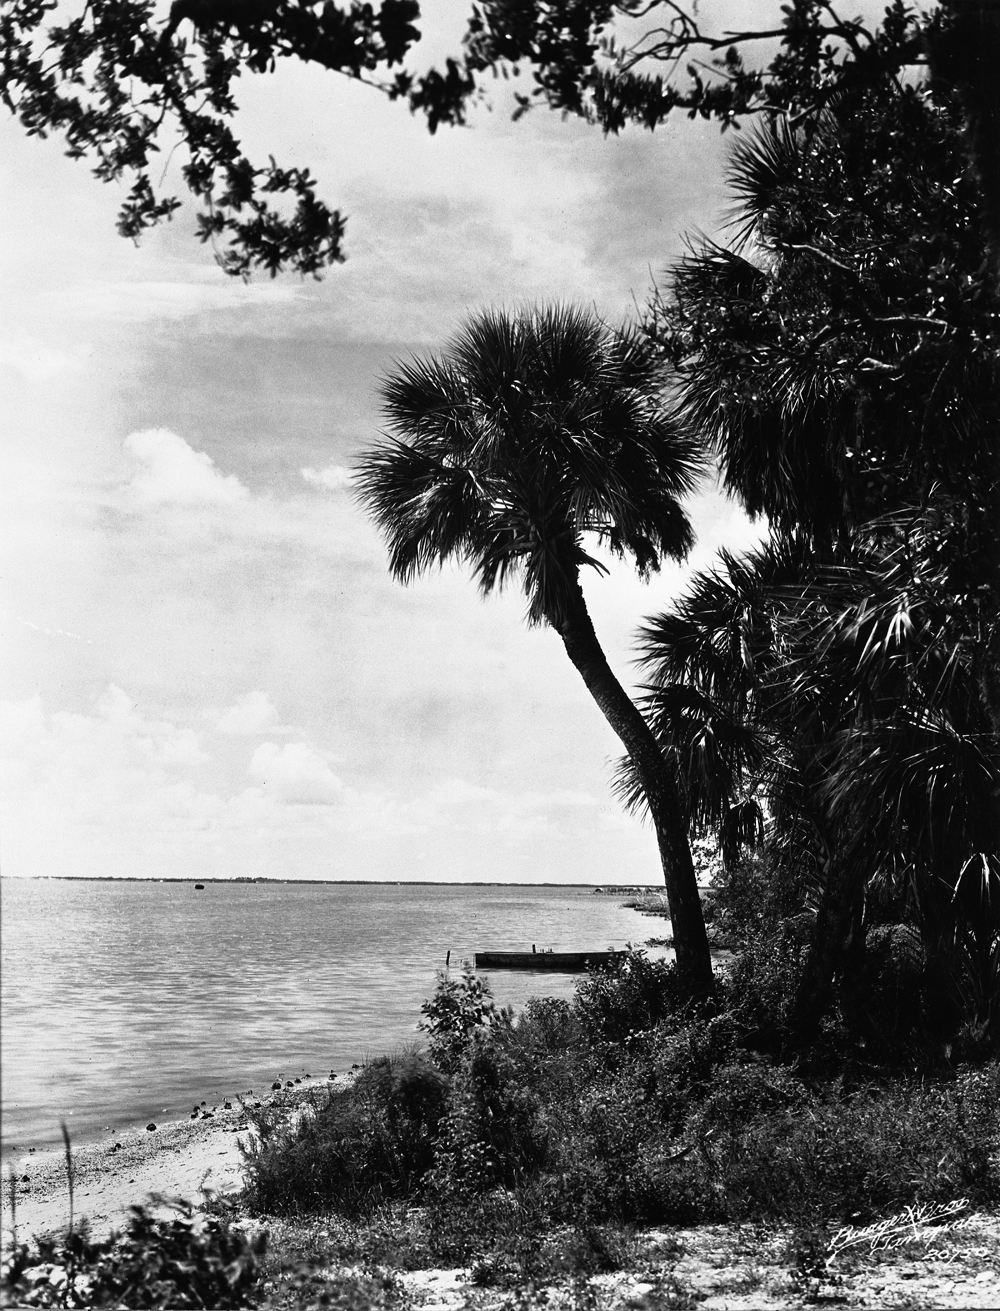 View from Weedon Island. 19--?. Black & white photonegative, 5 x 4 in. State Archives of Florida, Florida Memory.